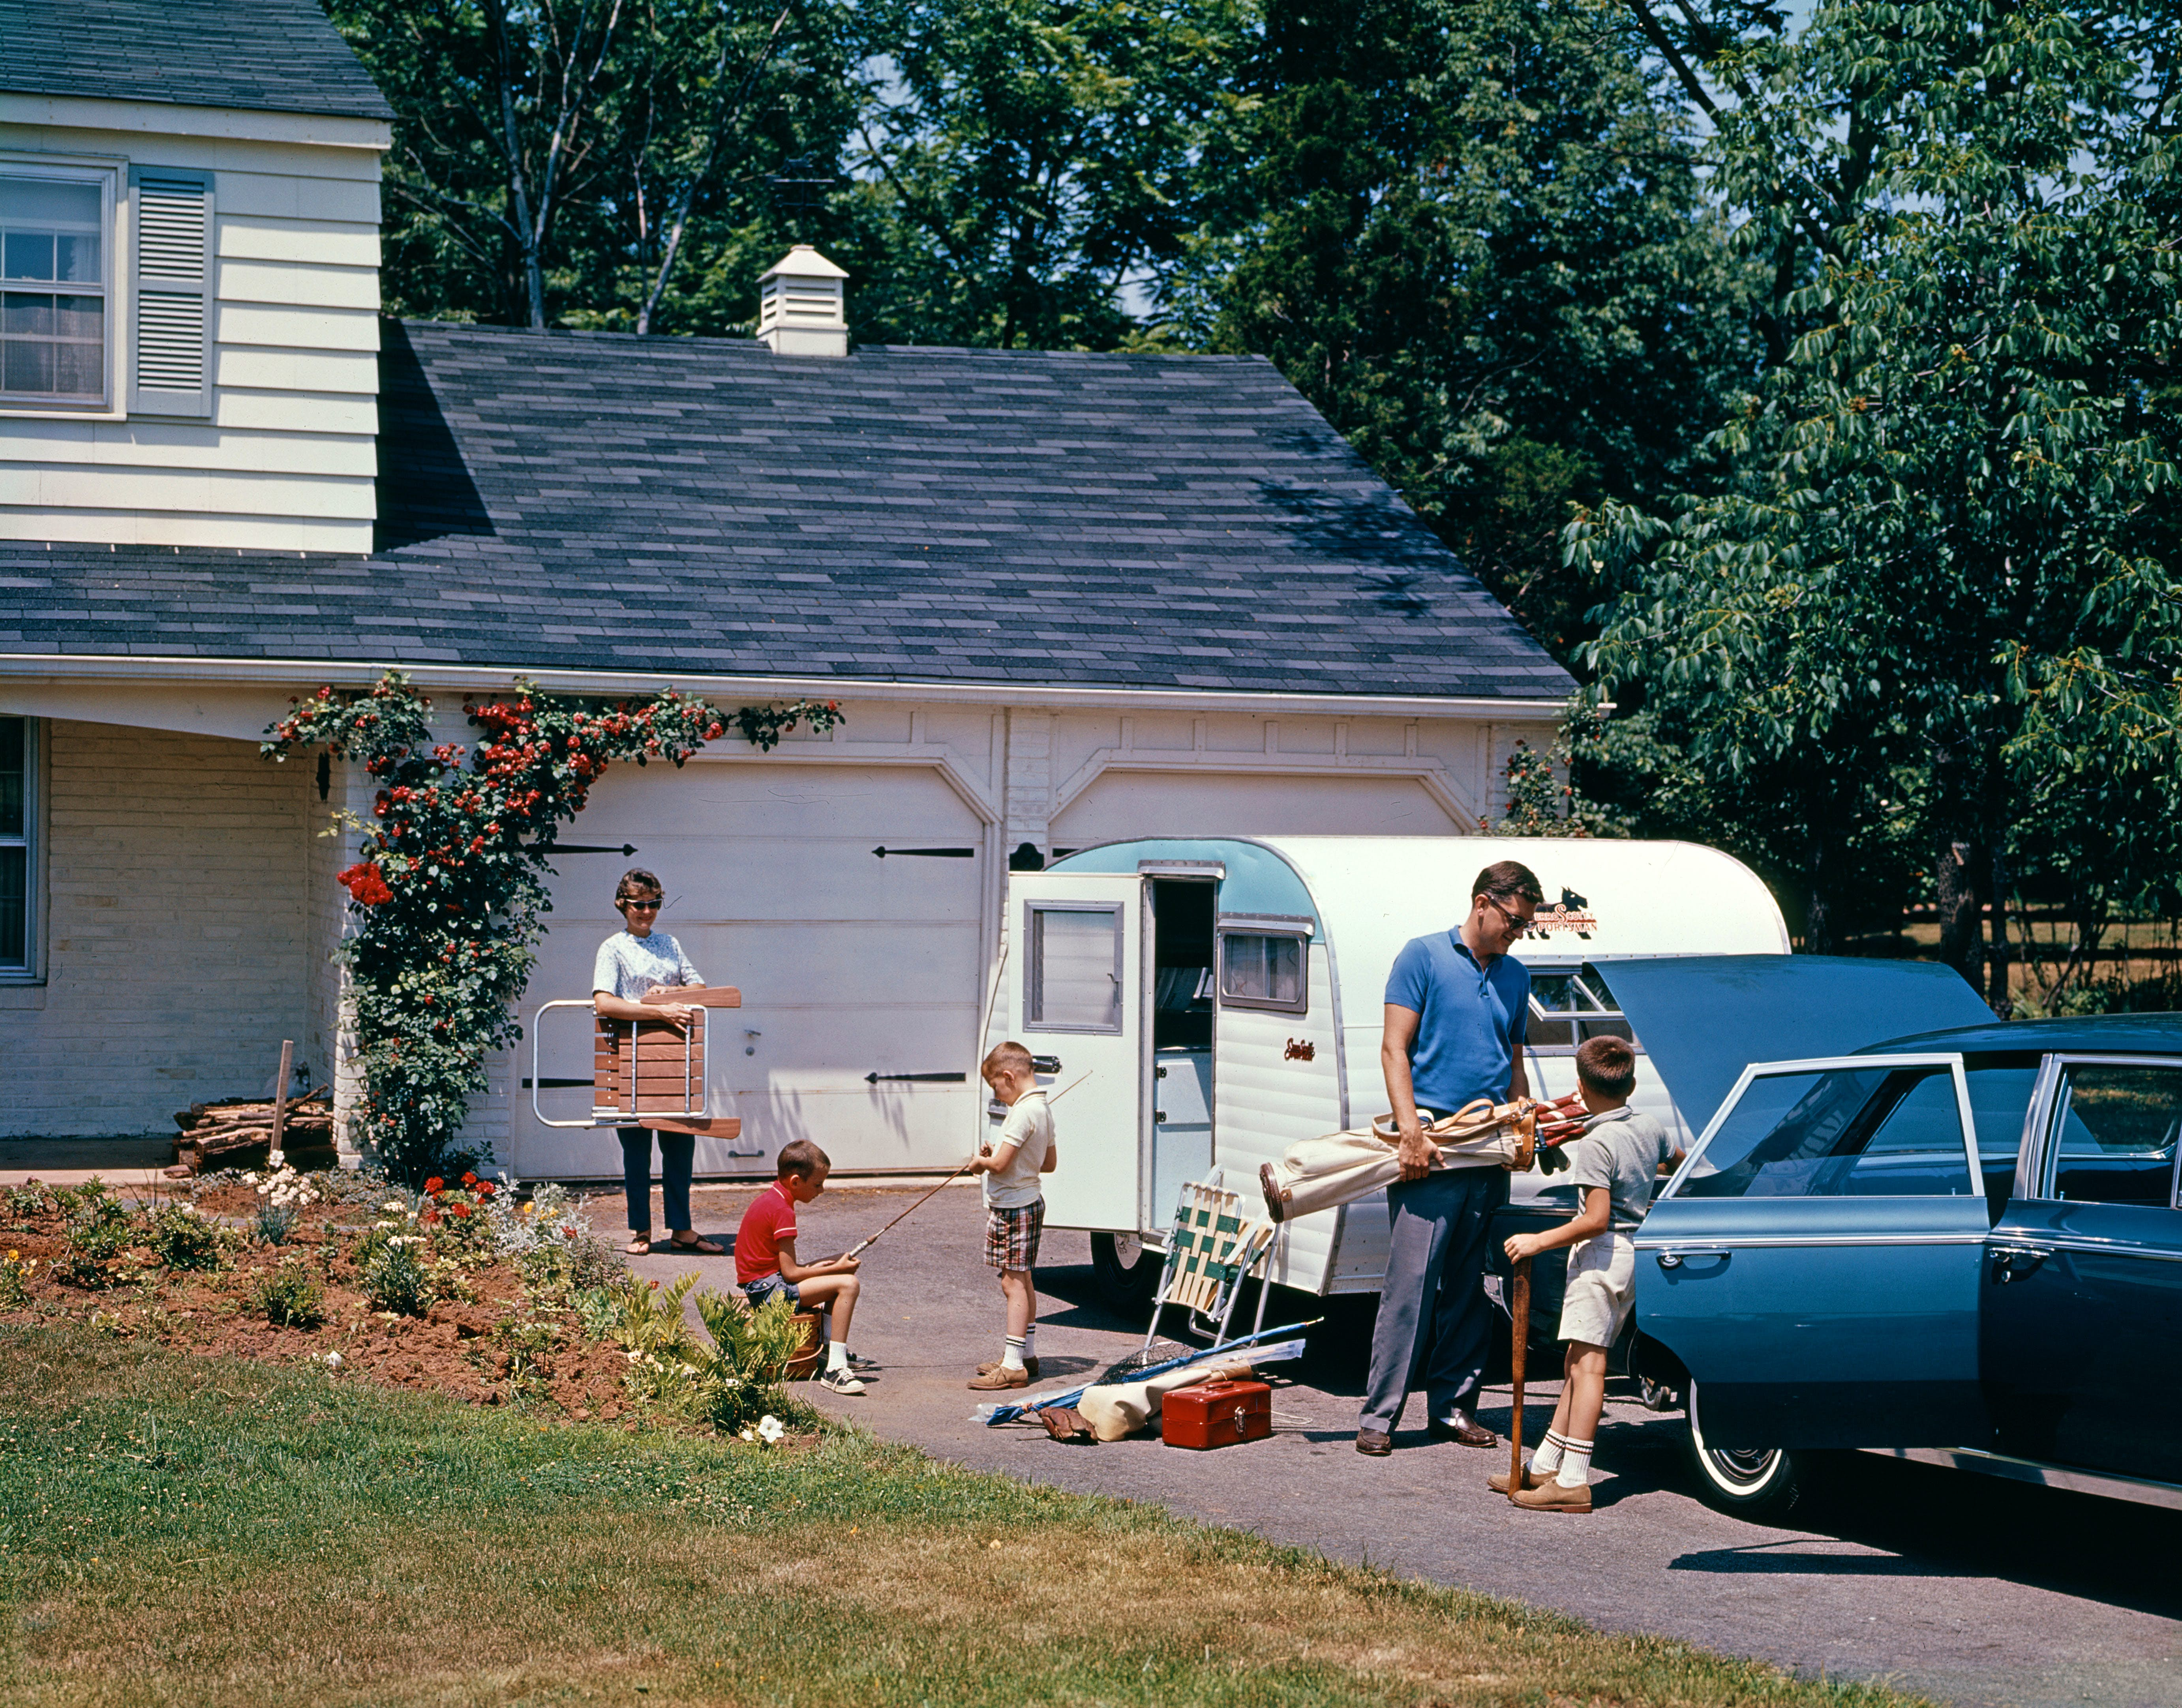 1960s FAMILY FATHER MOTHER SON DAUGHTER LOADING CAR AND TRAILER FOR VACATION SUMMER OUTDOOR